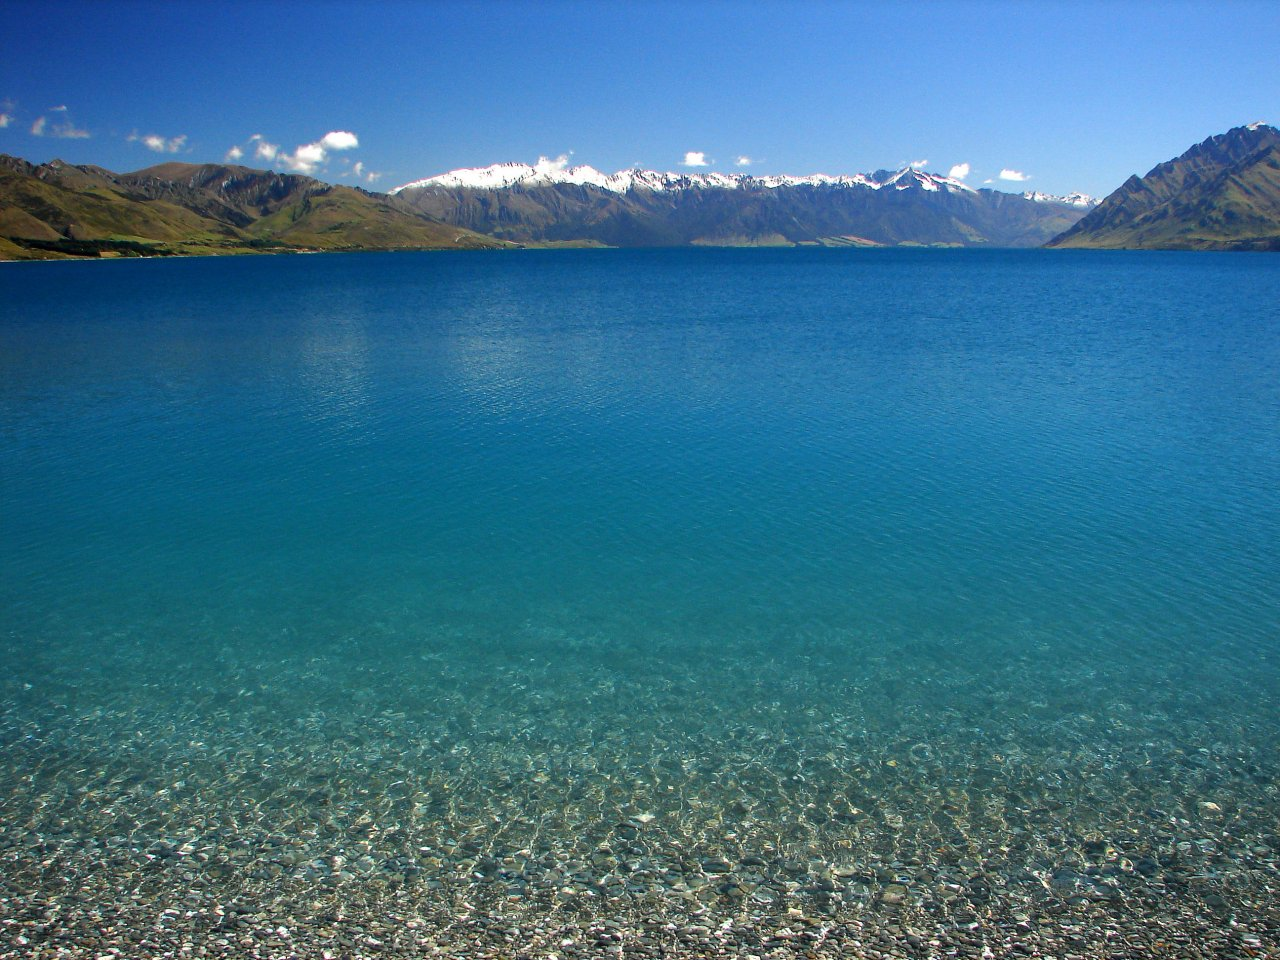 Cute Love Hearts Images Wallpapers For Mobile Travel Guide To Lake Hawea New Zealand Xcitefun Net